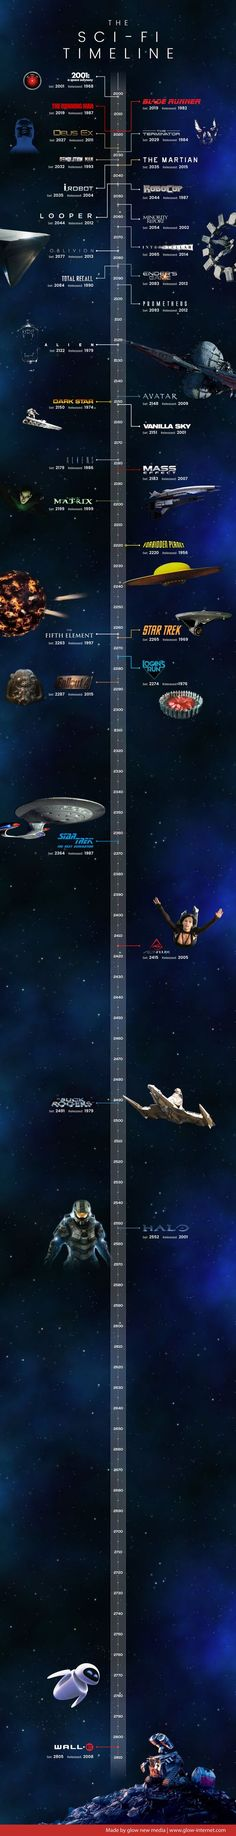 The SciFi Timeline http://geekxgirls.com/article.php?ID=8742